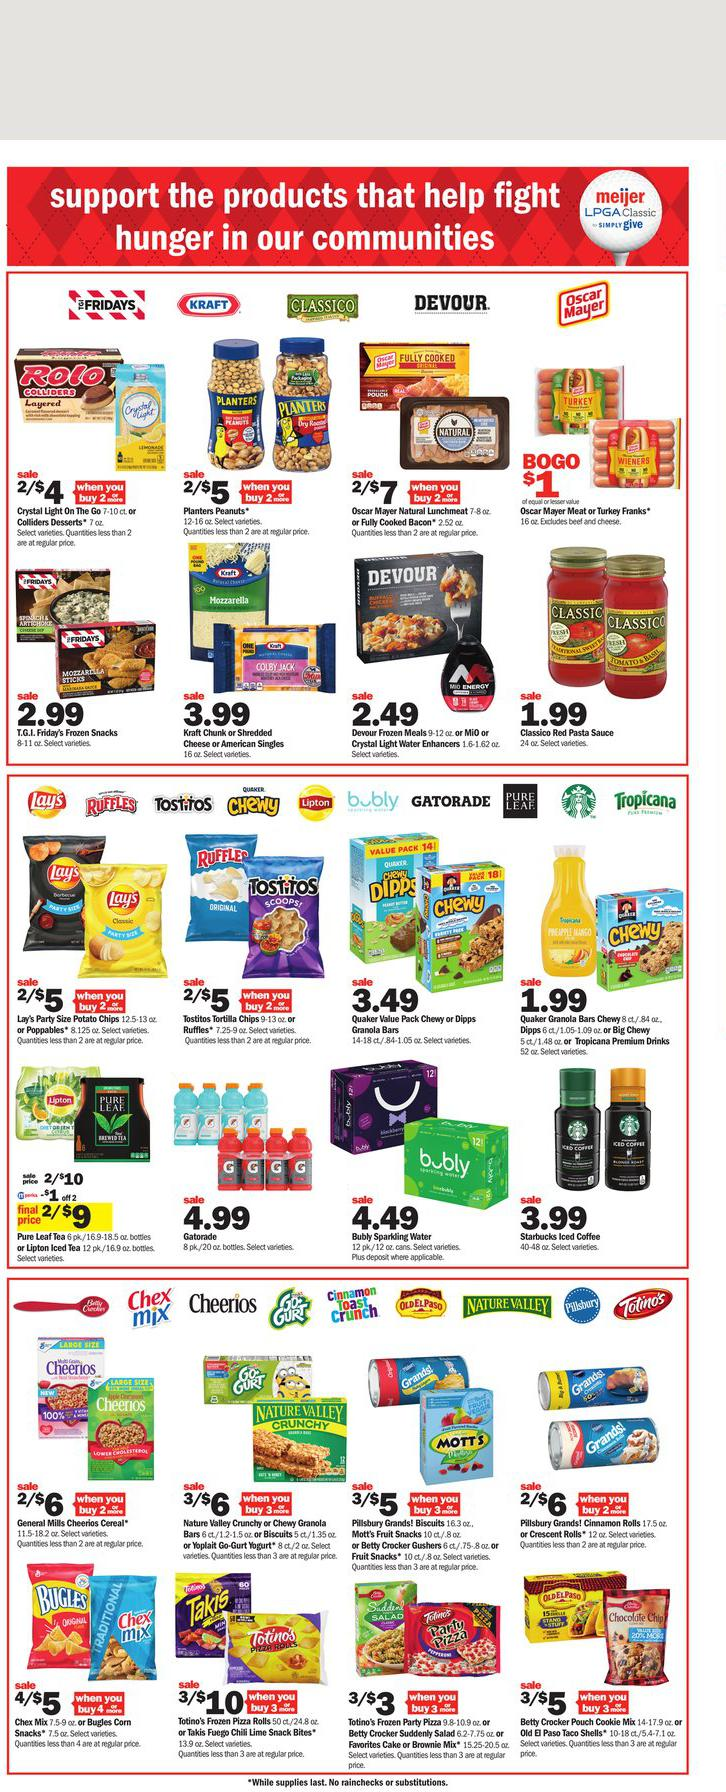 06.06.2021 Meijer ad 5. page